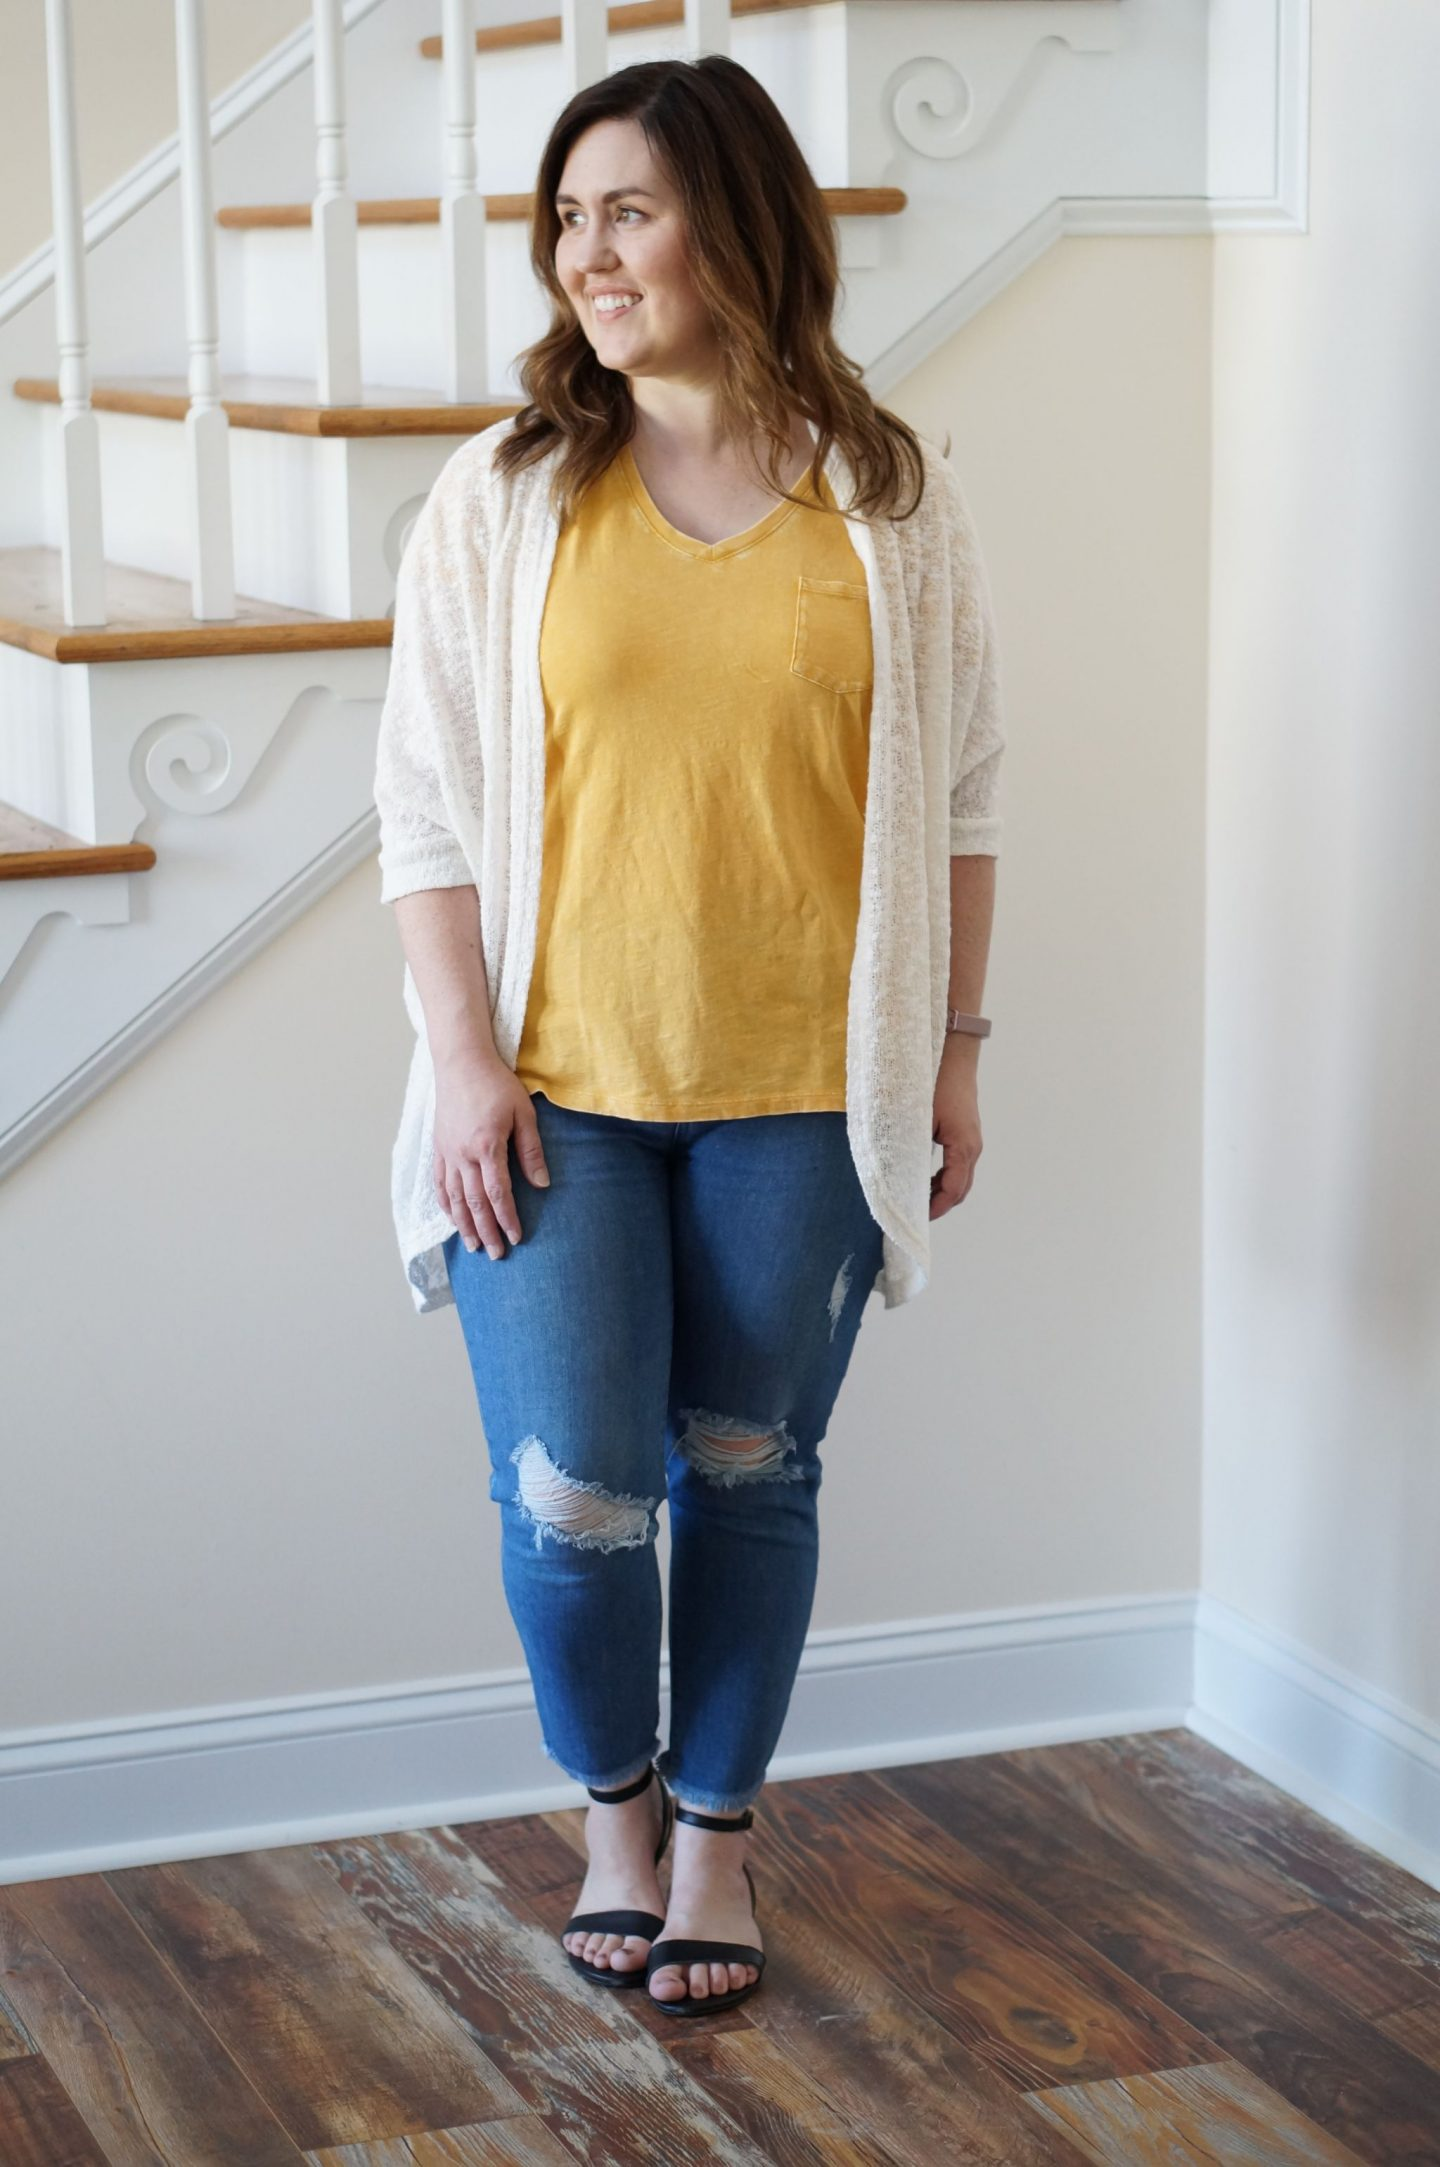 Popular North Carolina style blogger Rebecca Lately shares her recent favorite comfy basics.  Check out some of the comfy basics she's taking on vacay!